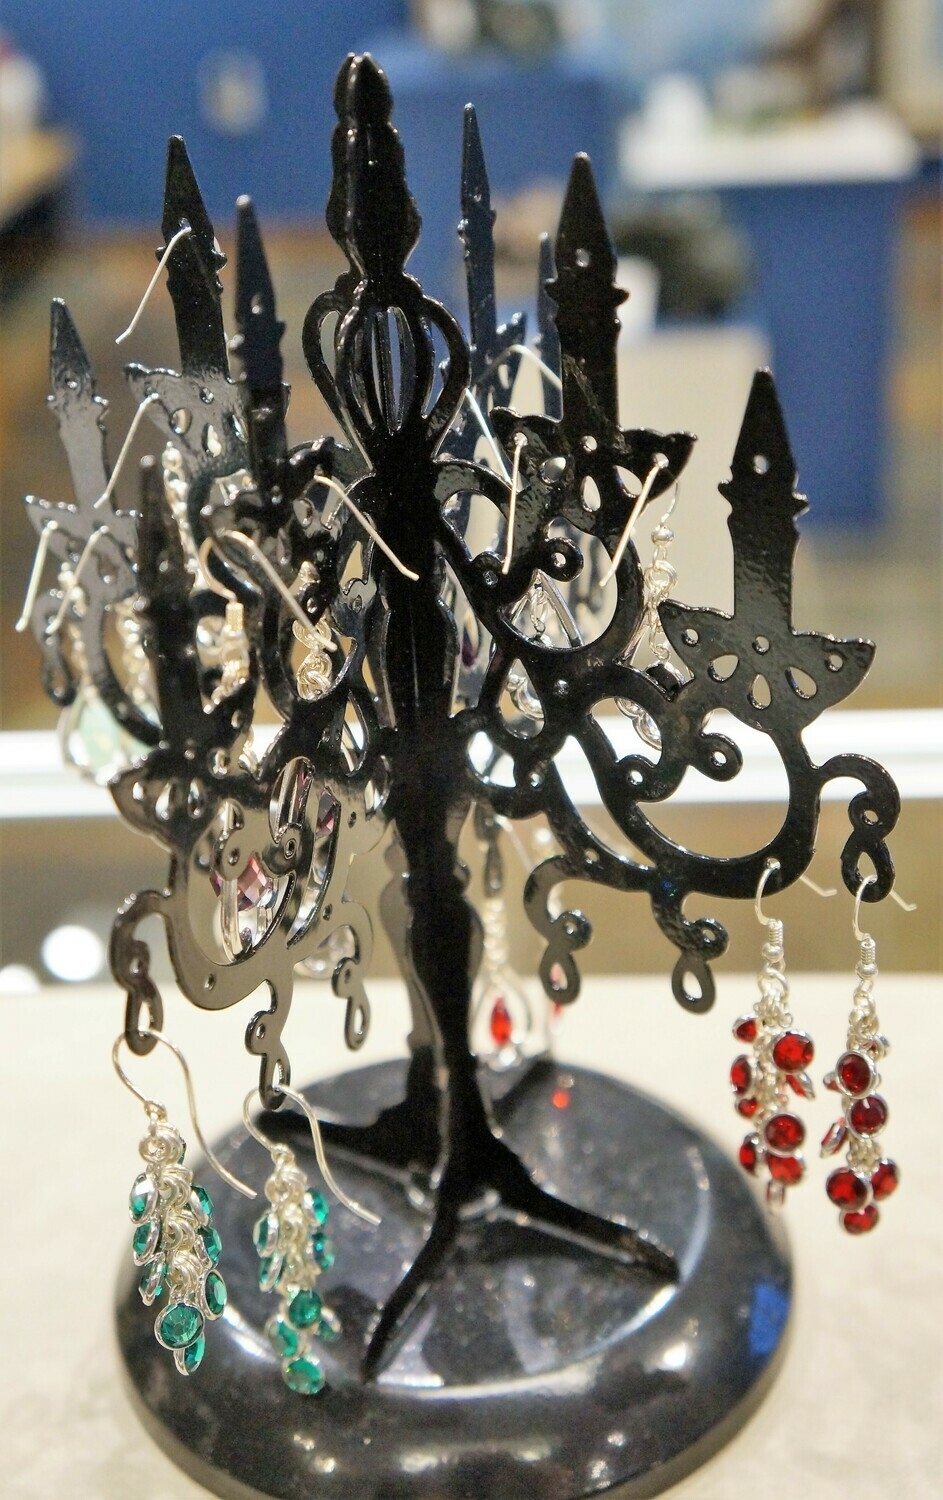 Argentium Silver Earrings, with Rhodium and Swarovski Crystals, by Manfred Rust